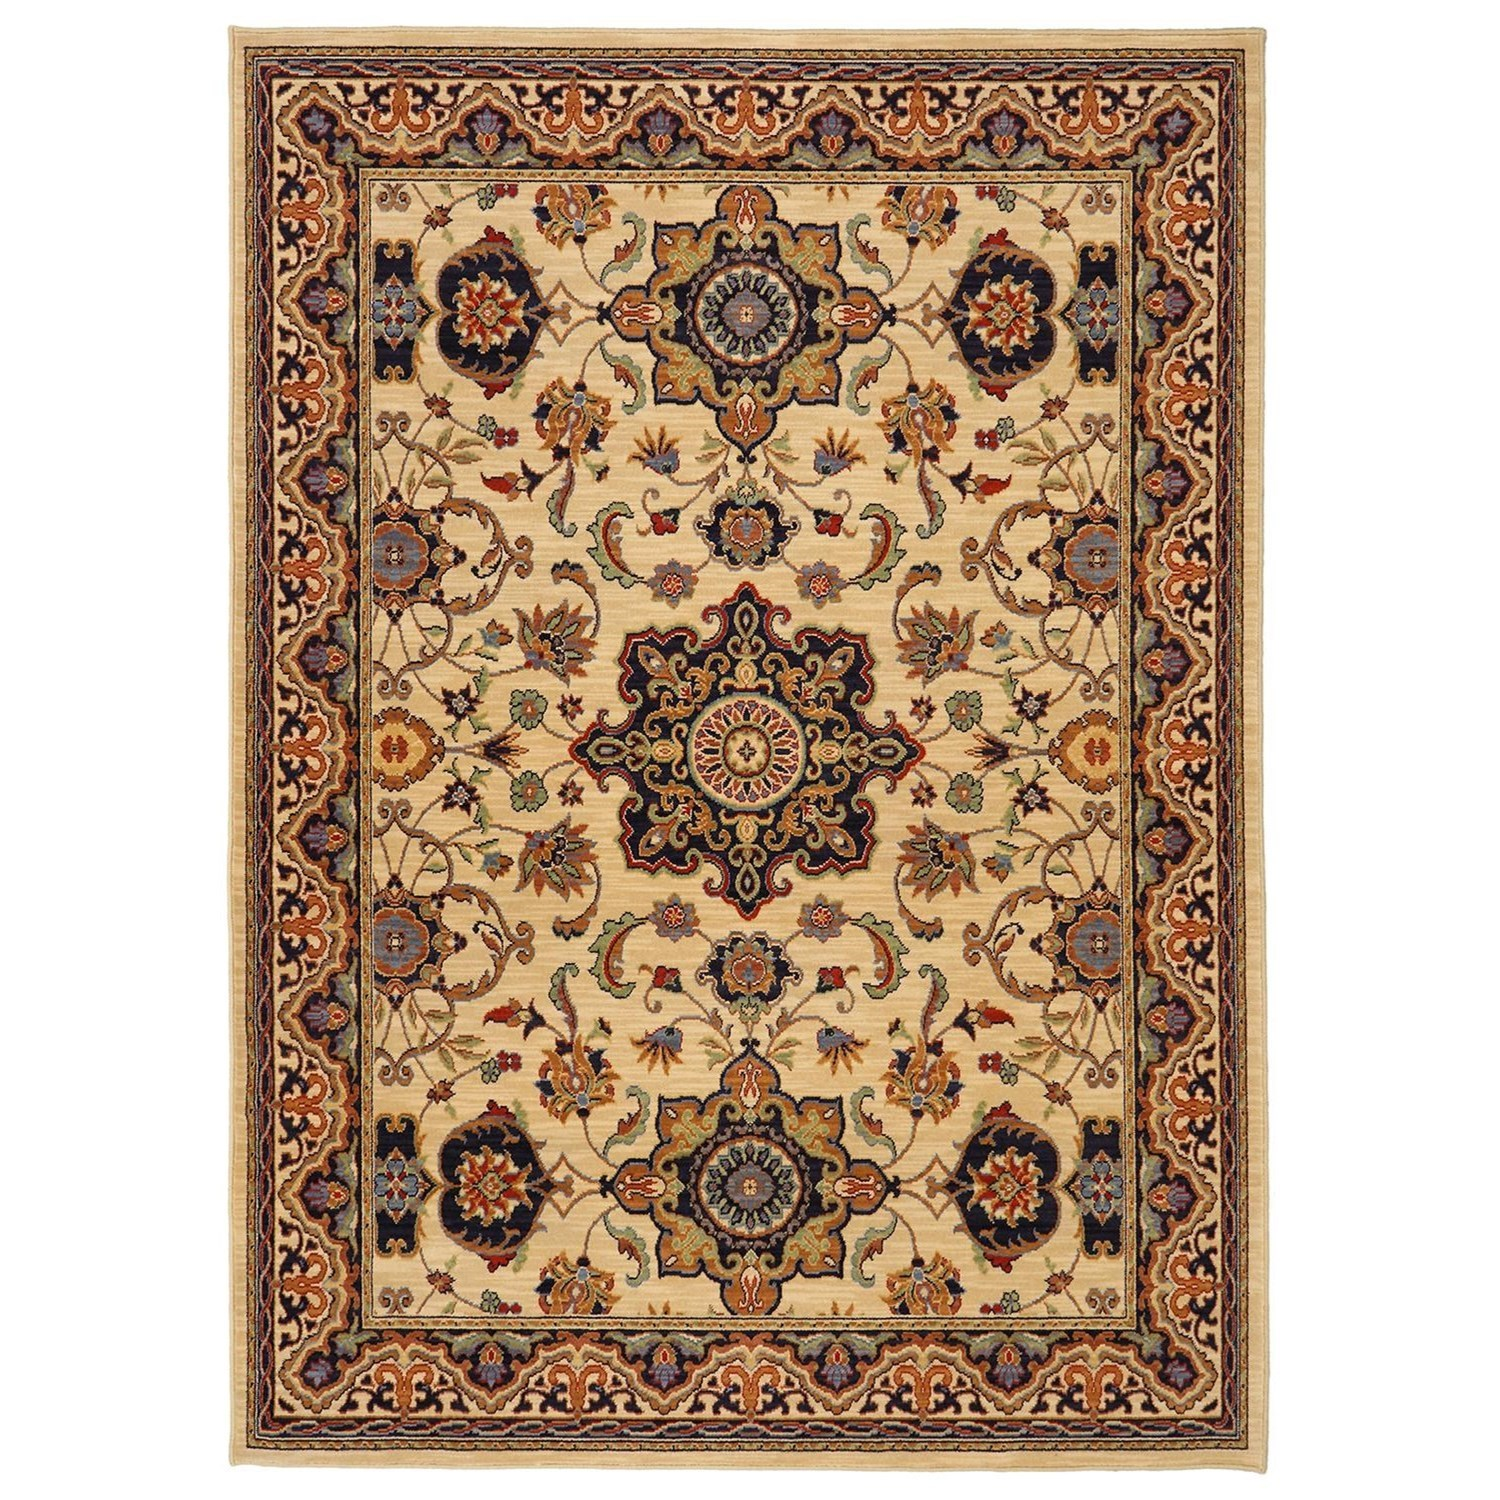 Karastan Rugs English Manor 8'x10'5 Manchester Ivory Rug - Item Number: 02120 00602 096125